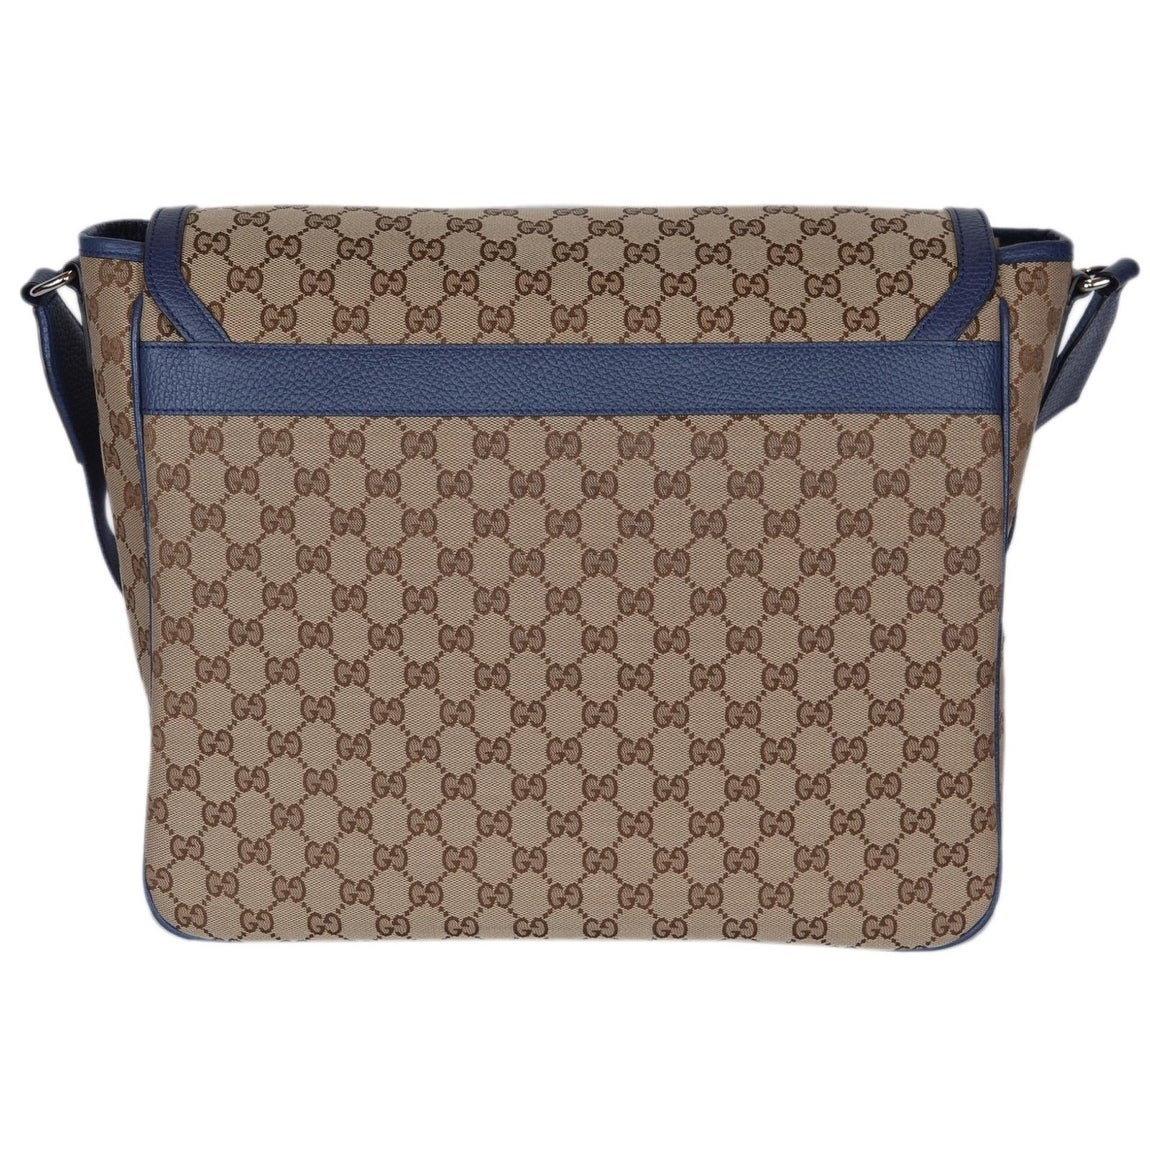 283340c045bf Shop Gucci 510340 Beige Blue Original Canvas GG Convertible Diaper Bag -  Free Shipping Today - Overstock - 21220305